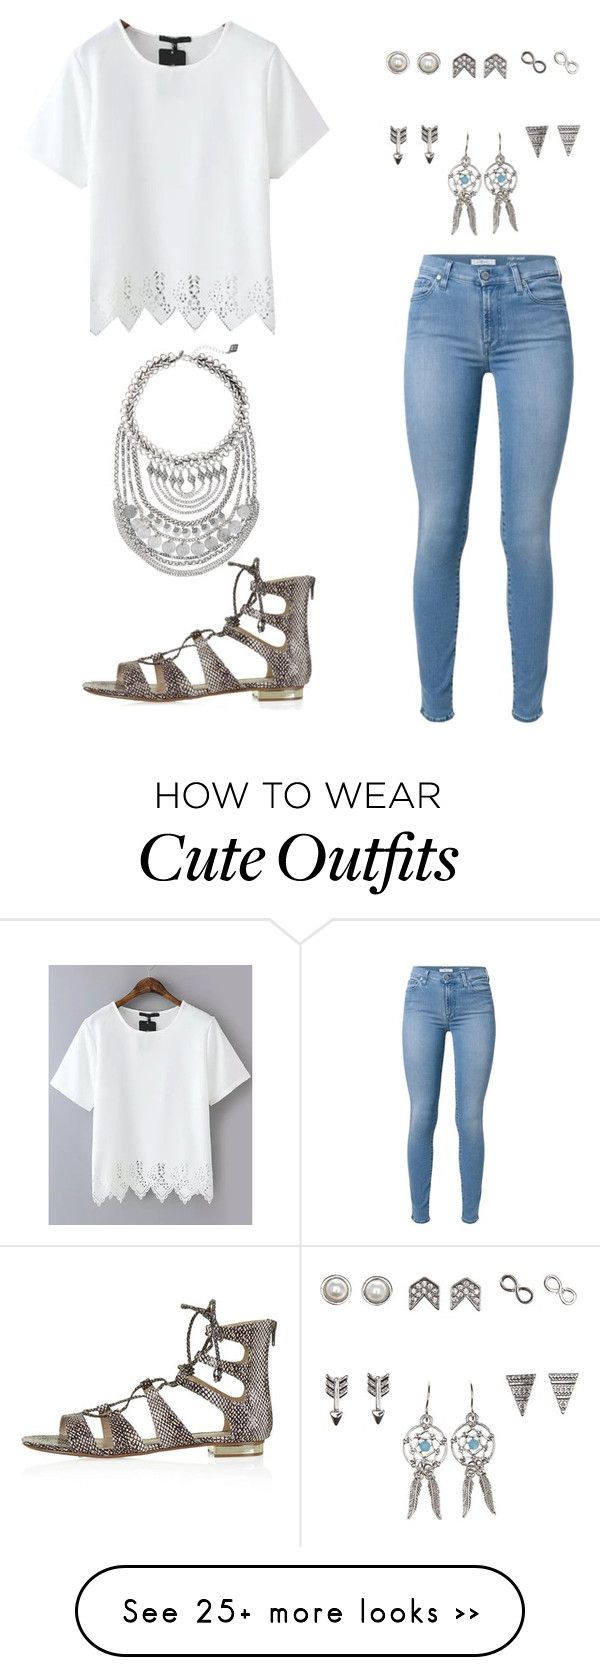 """Cute outfit"" by snhollick on Polyvore featuring 7 For All Mankind, Charlotte Russe, Topshop and Express"